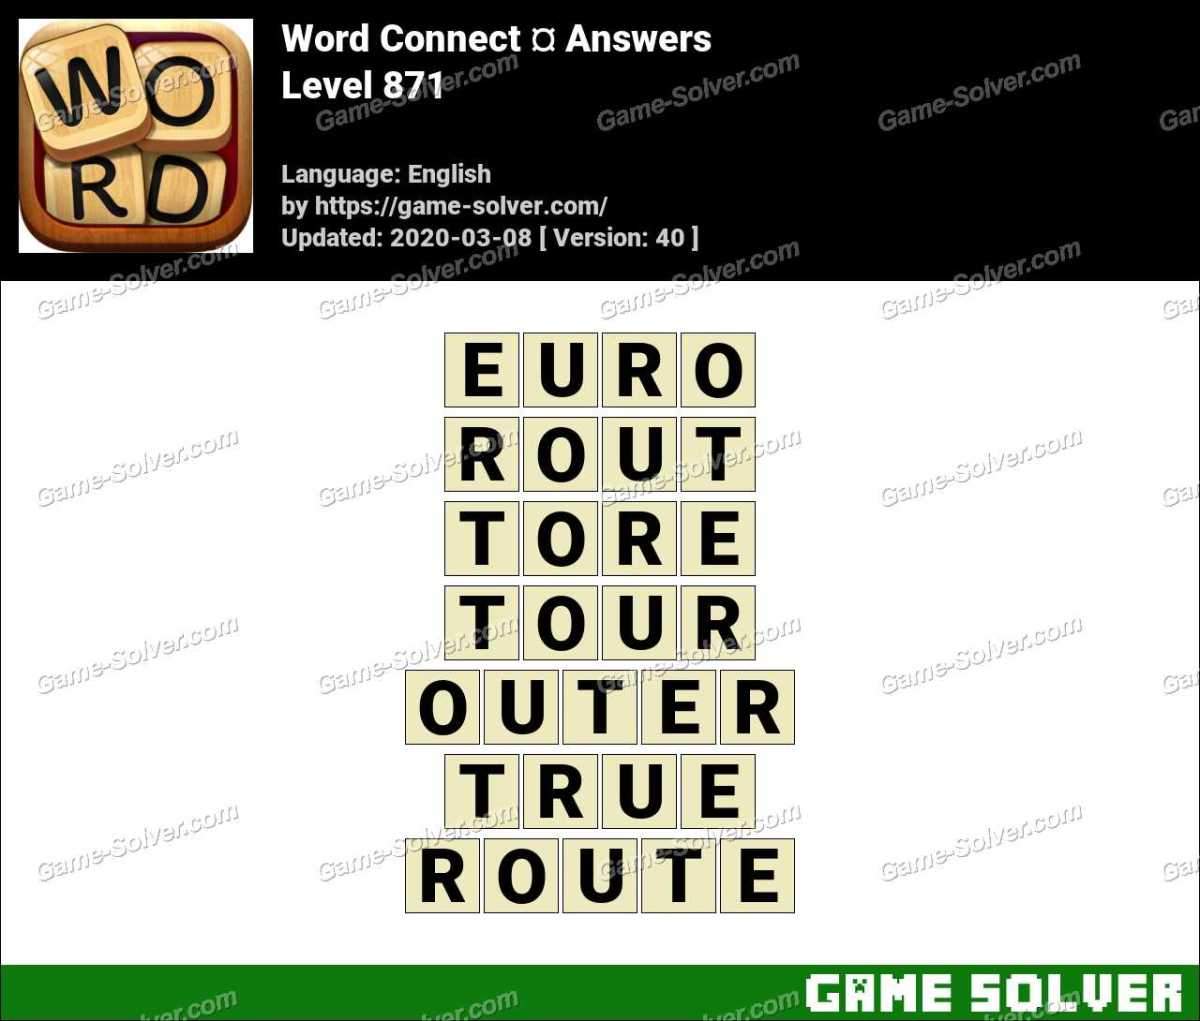 Word Connect Level 871 Answers